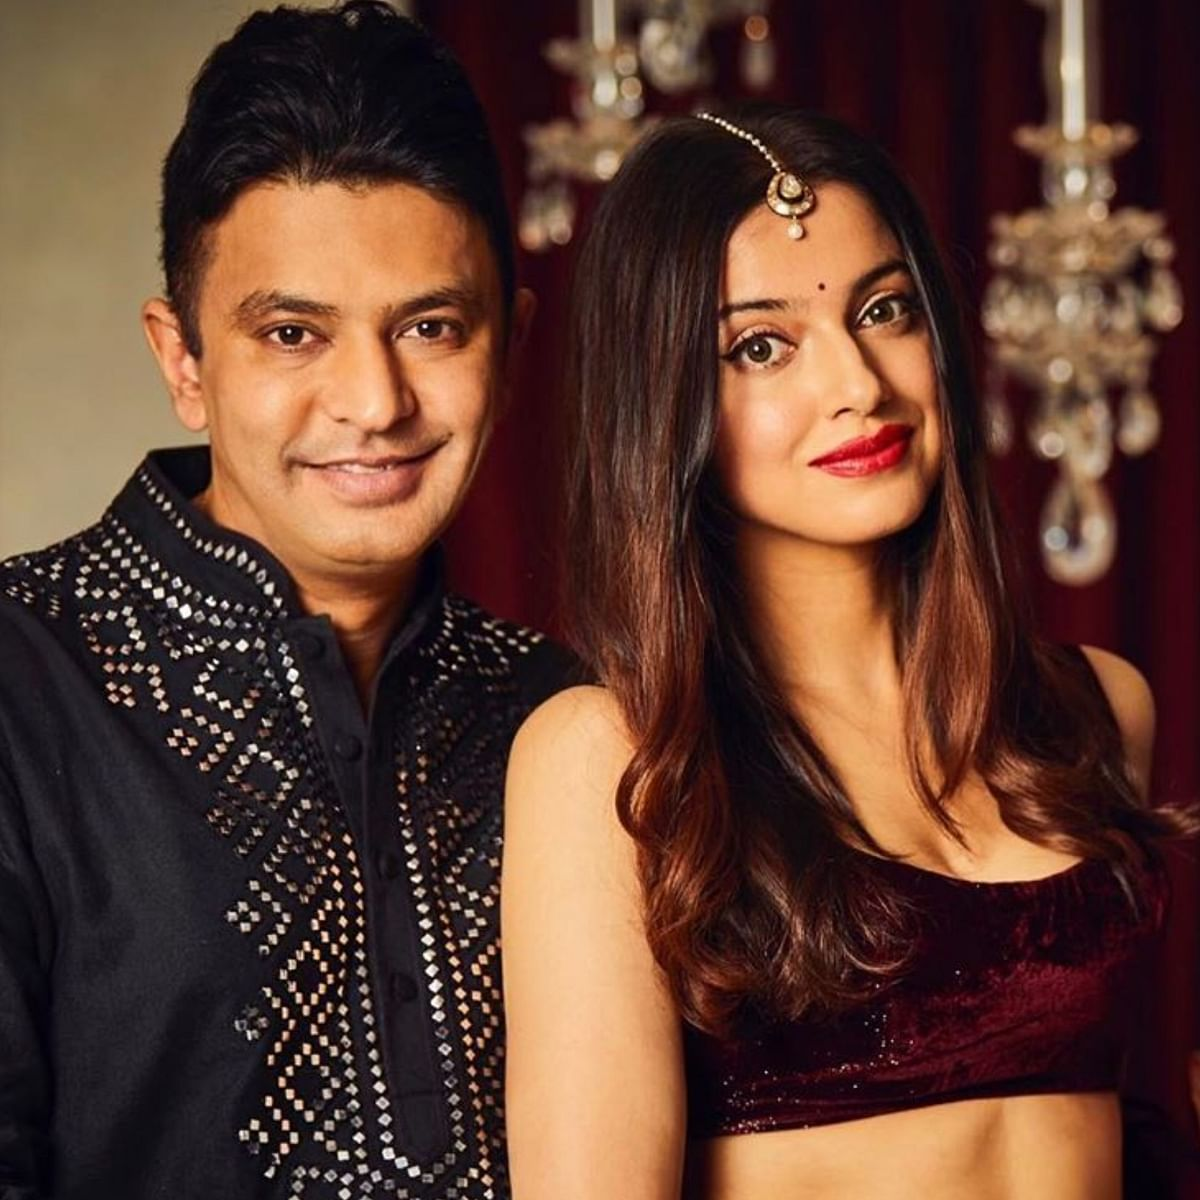 'T-Series ne aapko industry mein break diya': Bhushan Kumar's wife Divya Khosla hits back at Sonu Nigam